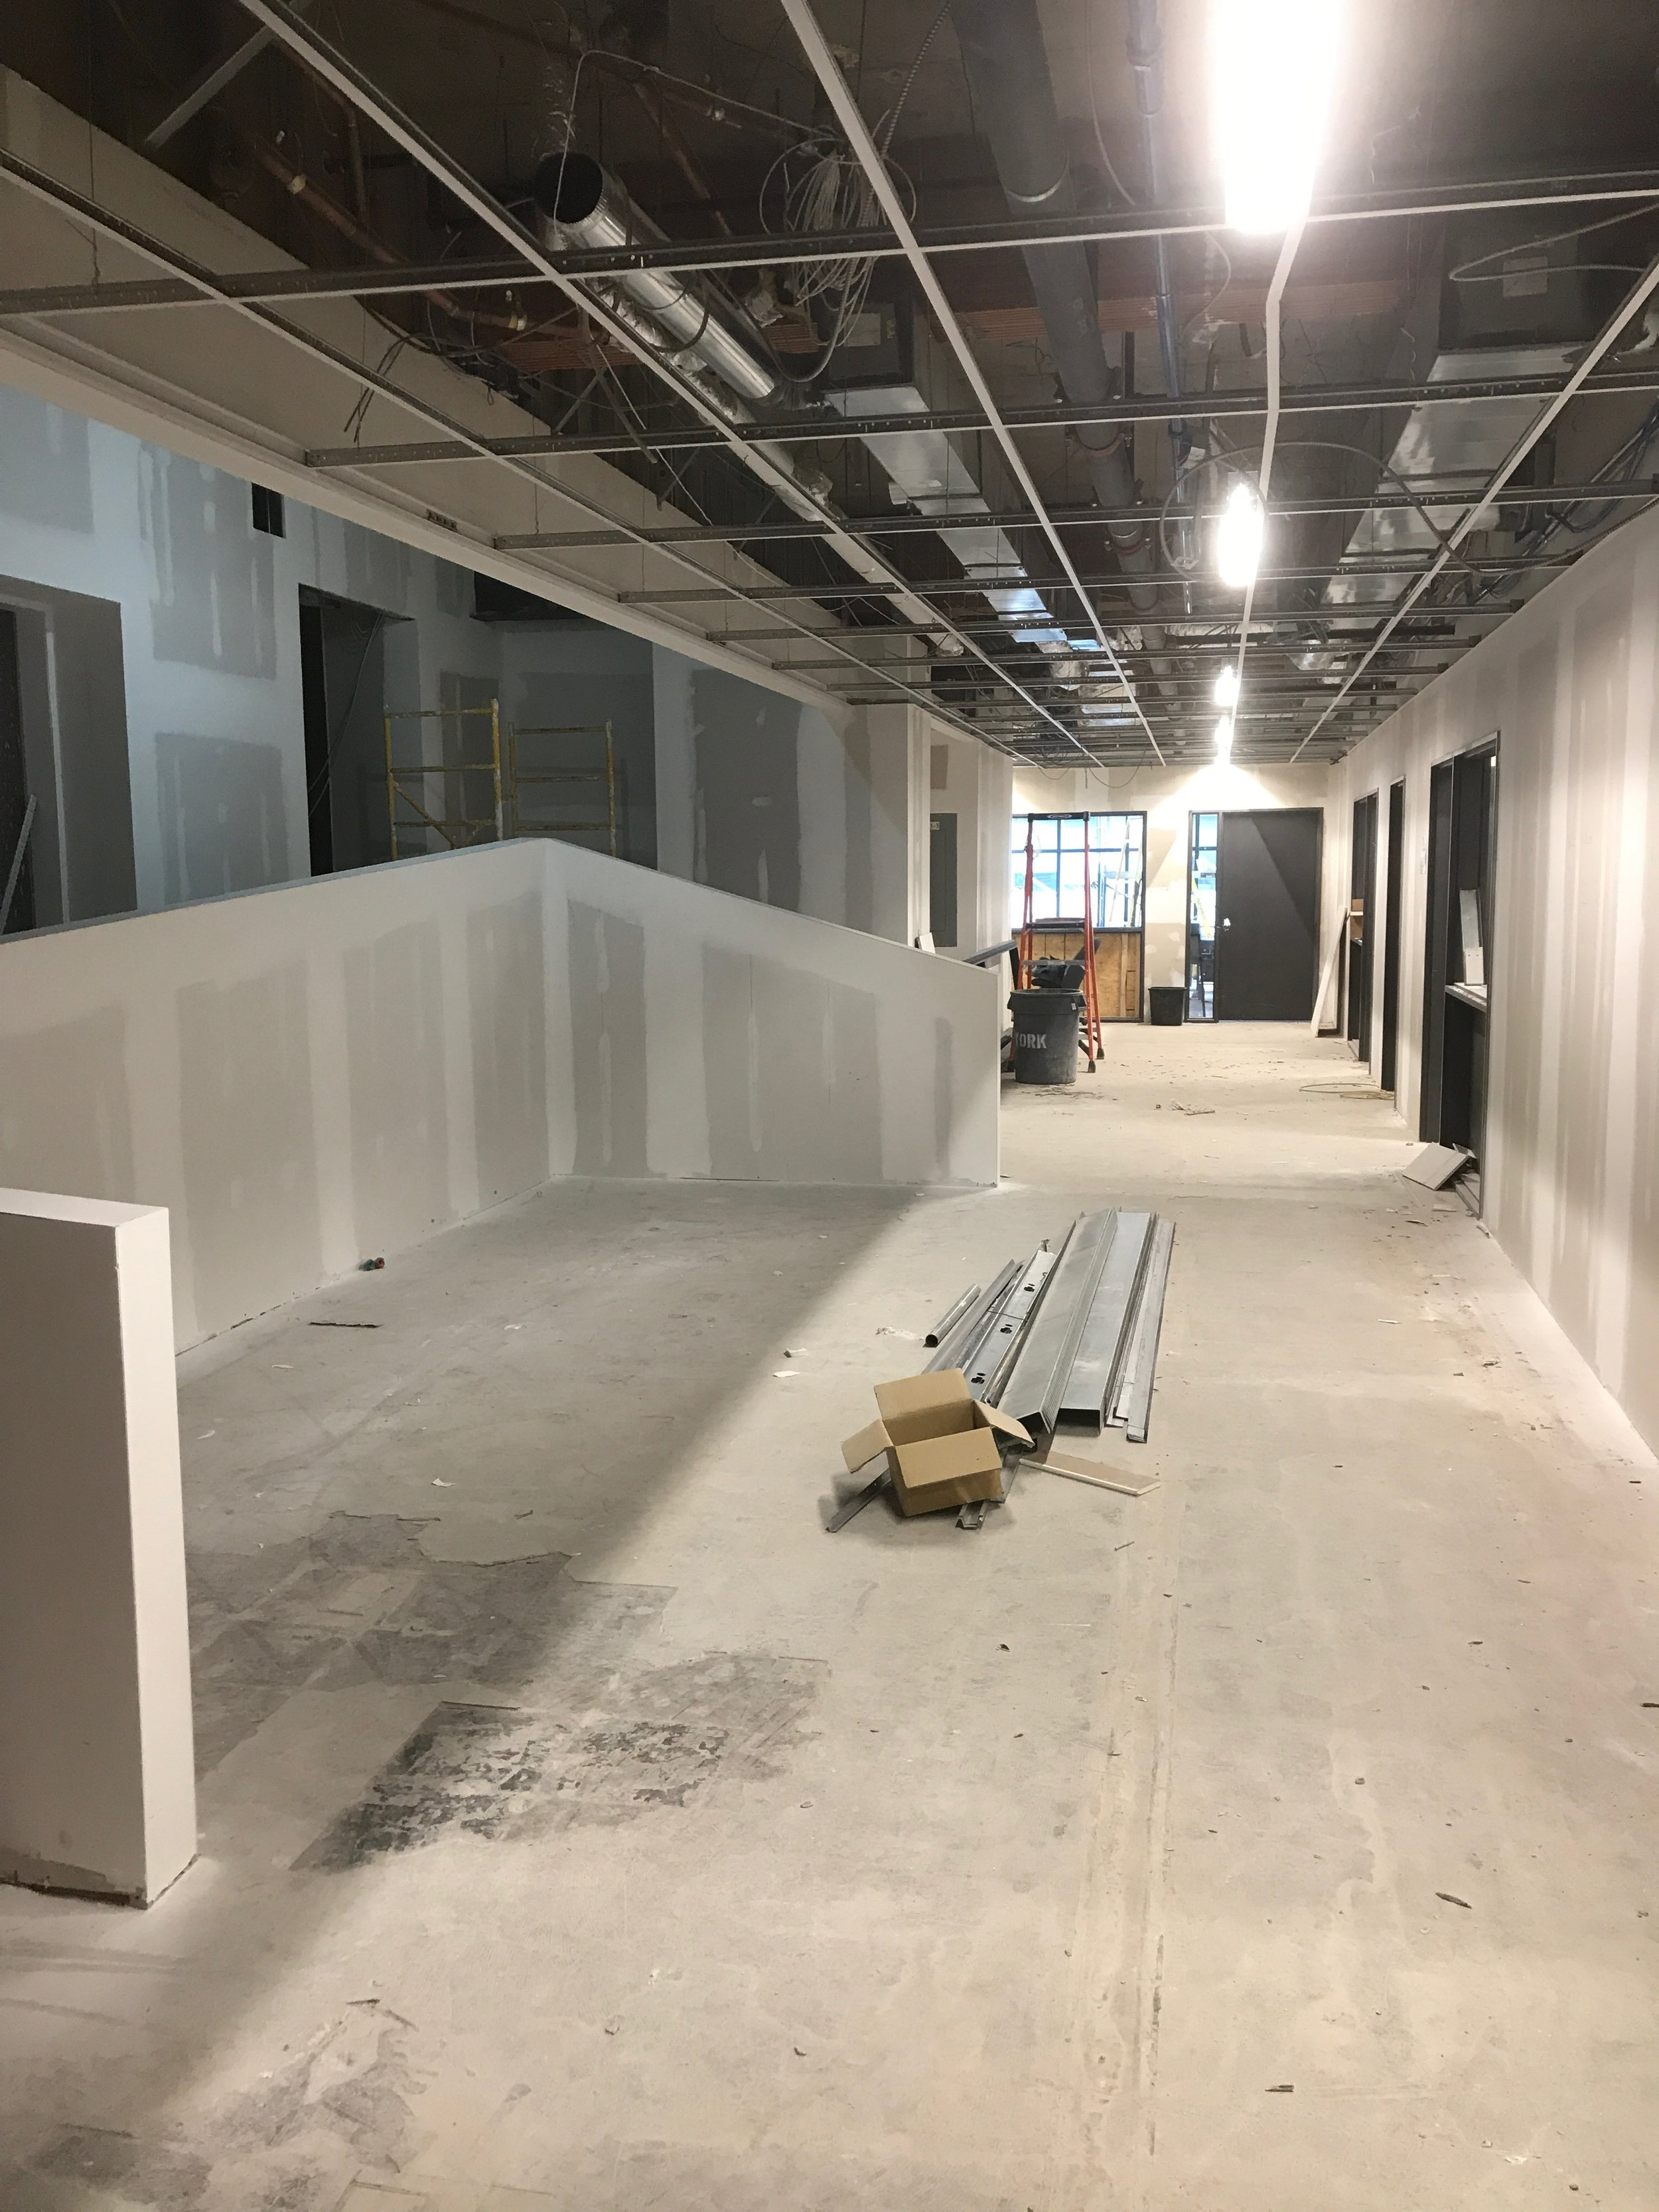 On the second floor, our IB Science Labs are quickly taking shape. Outside, cafe seating will be installed to allow small student groups to work collaboratively and socialize.